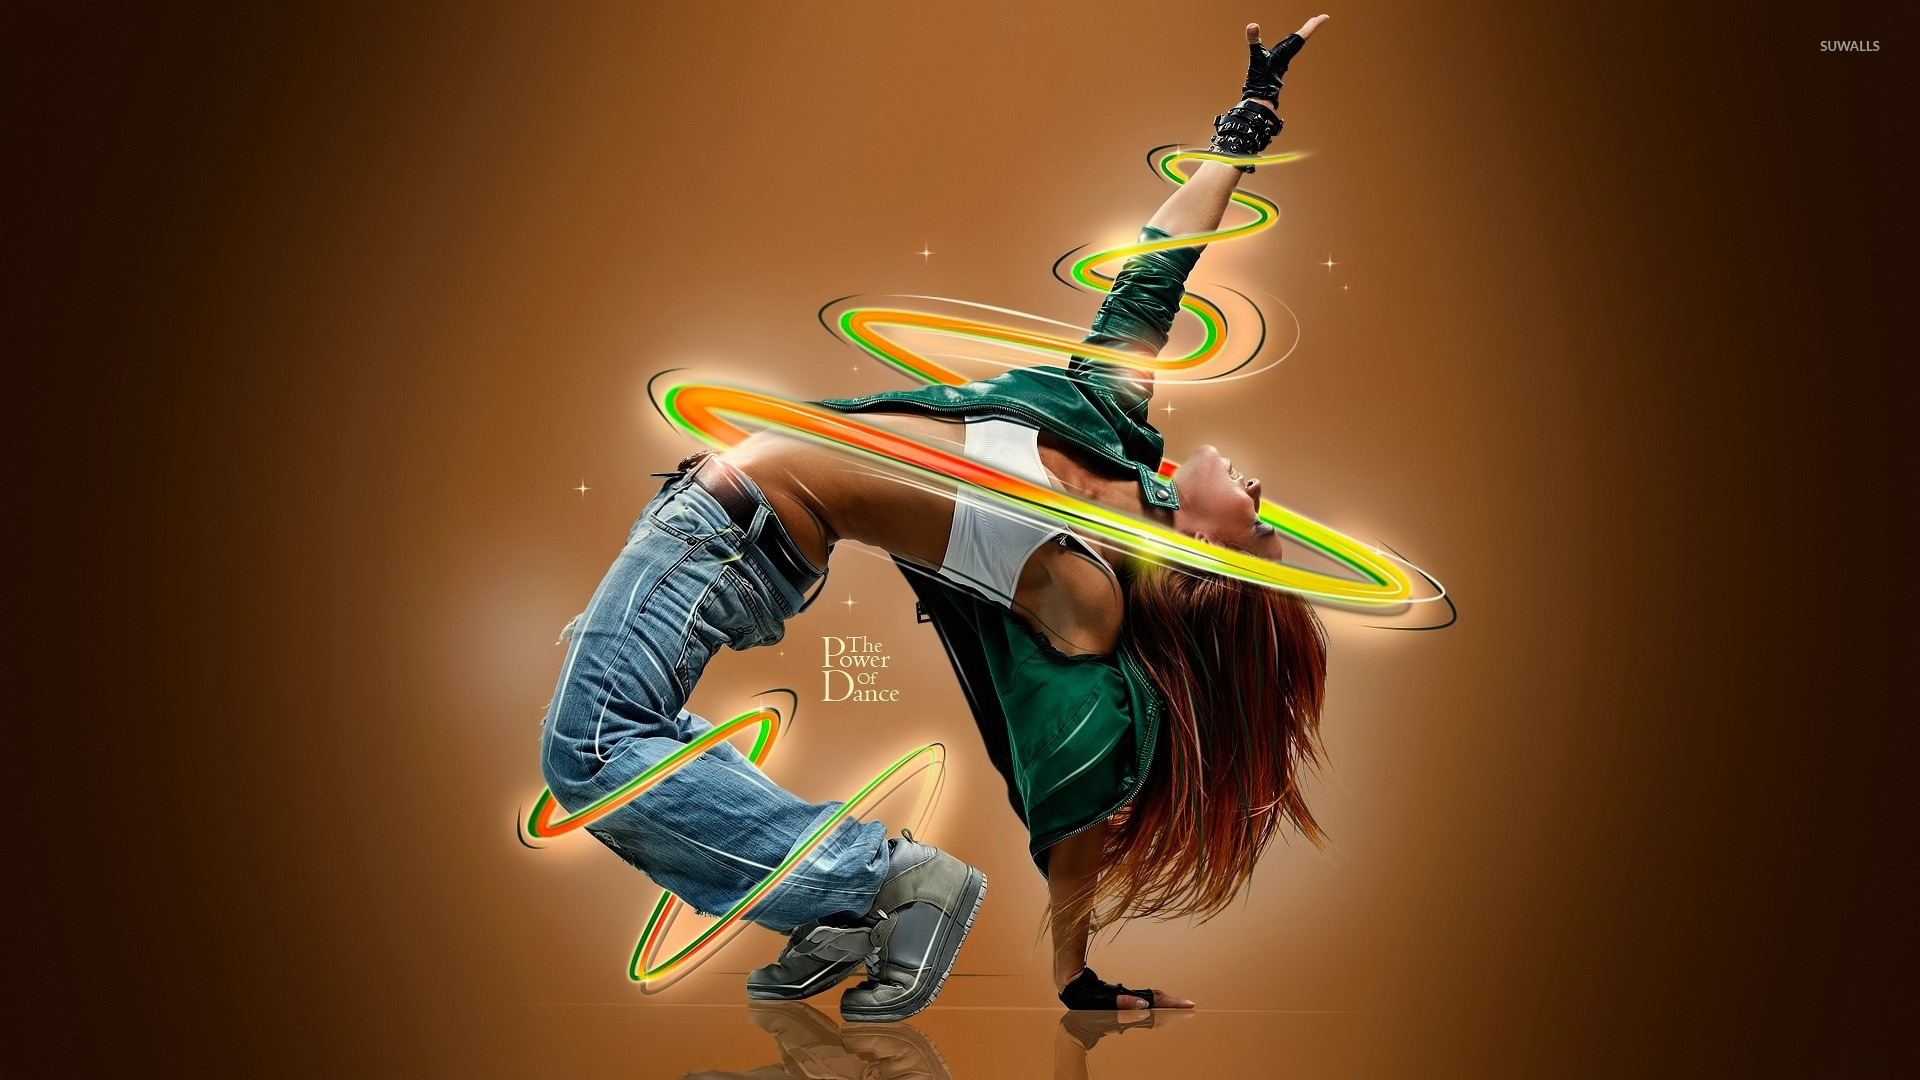 The Power Of Dance Wallpaper Artistic Wallpapers 45536